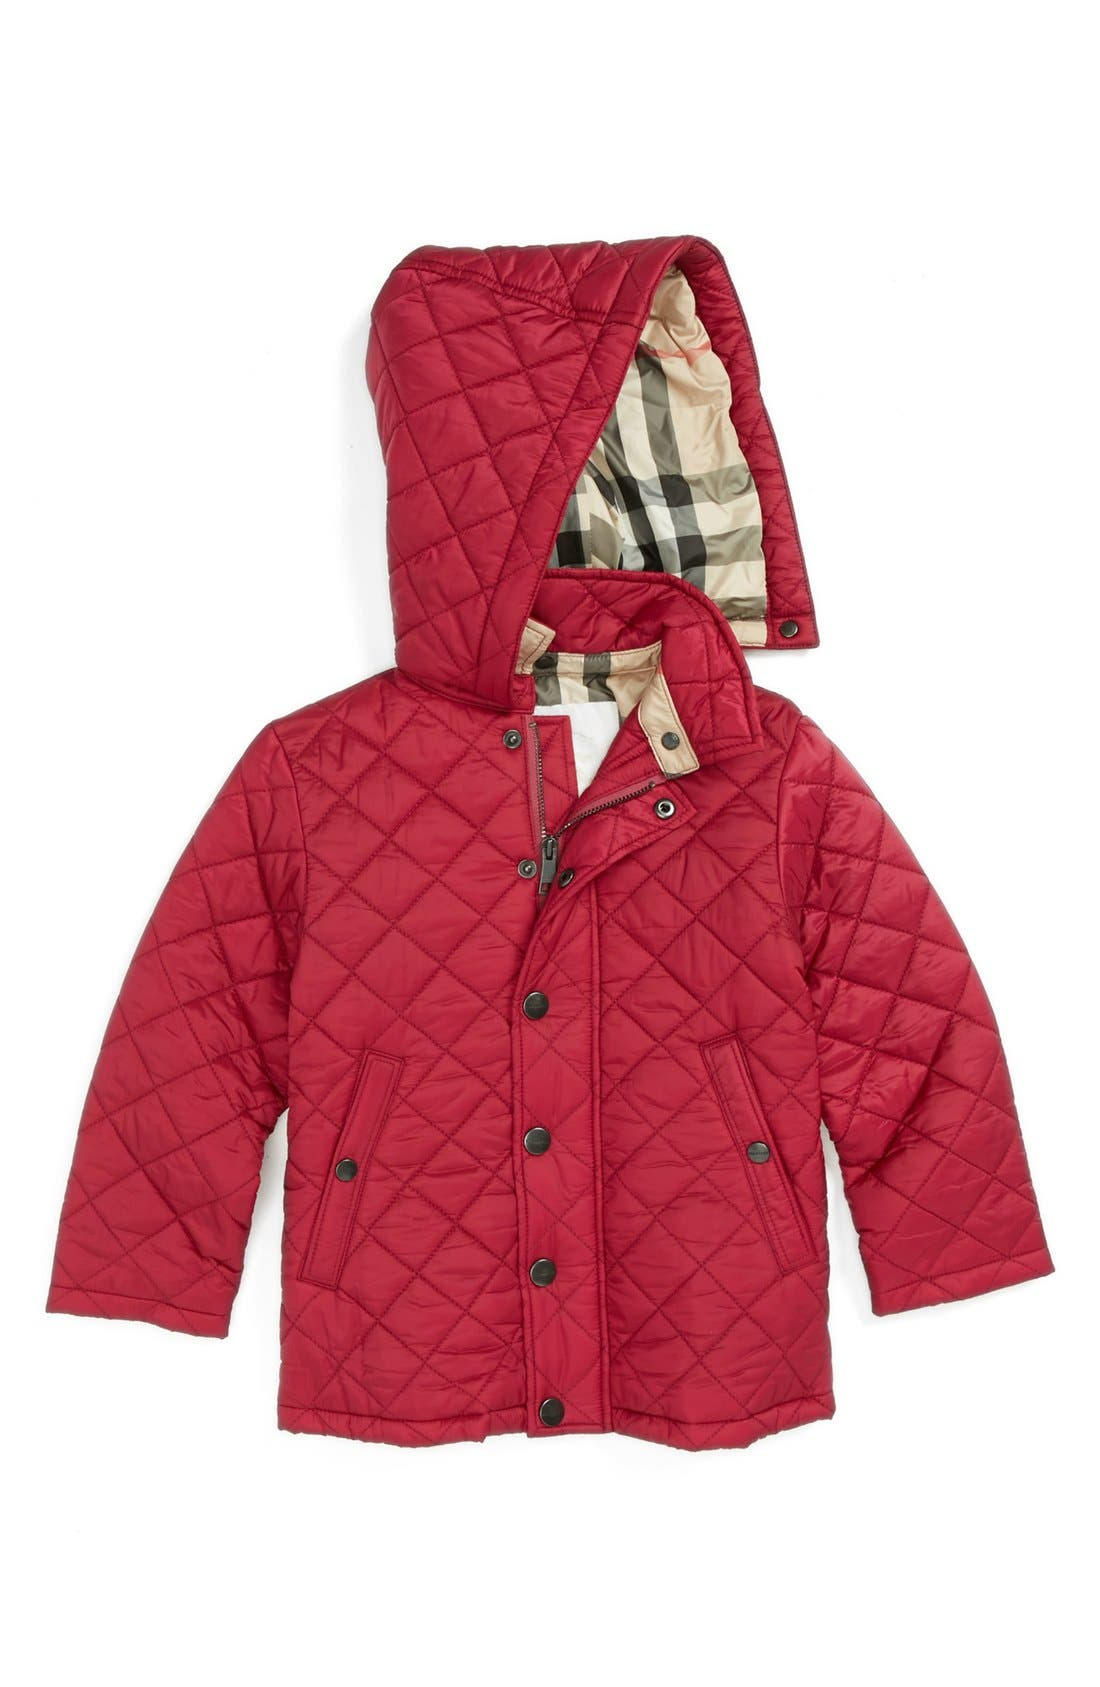 Alternate Image 1 Selected - Burberry Quilted Coat (Baby Girls)